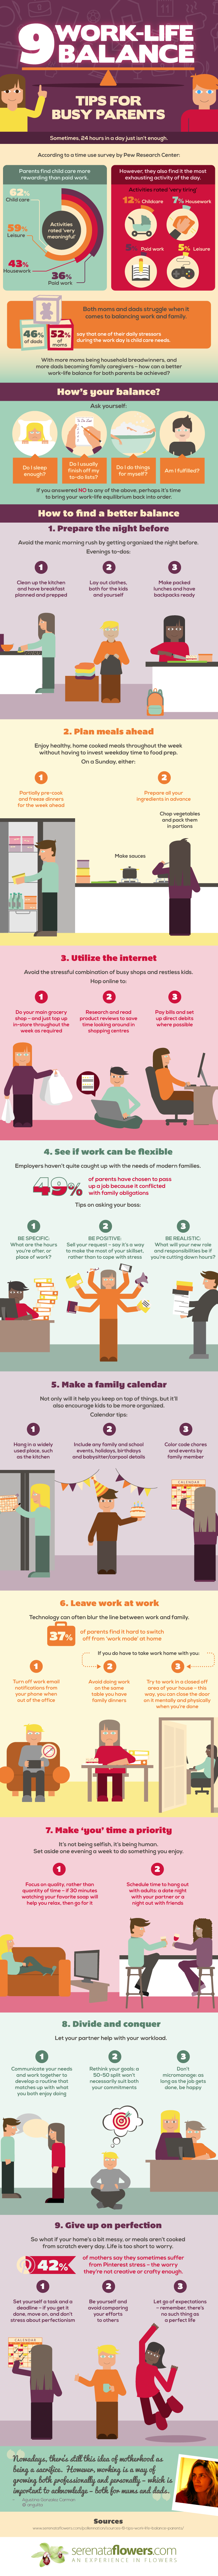 How to Achieve True Work-Life Balance: 9 Valuable Tips for Busy Parents- Infographic